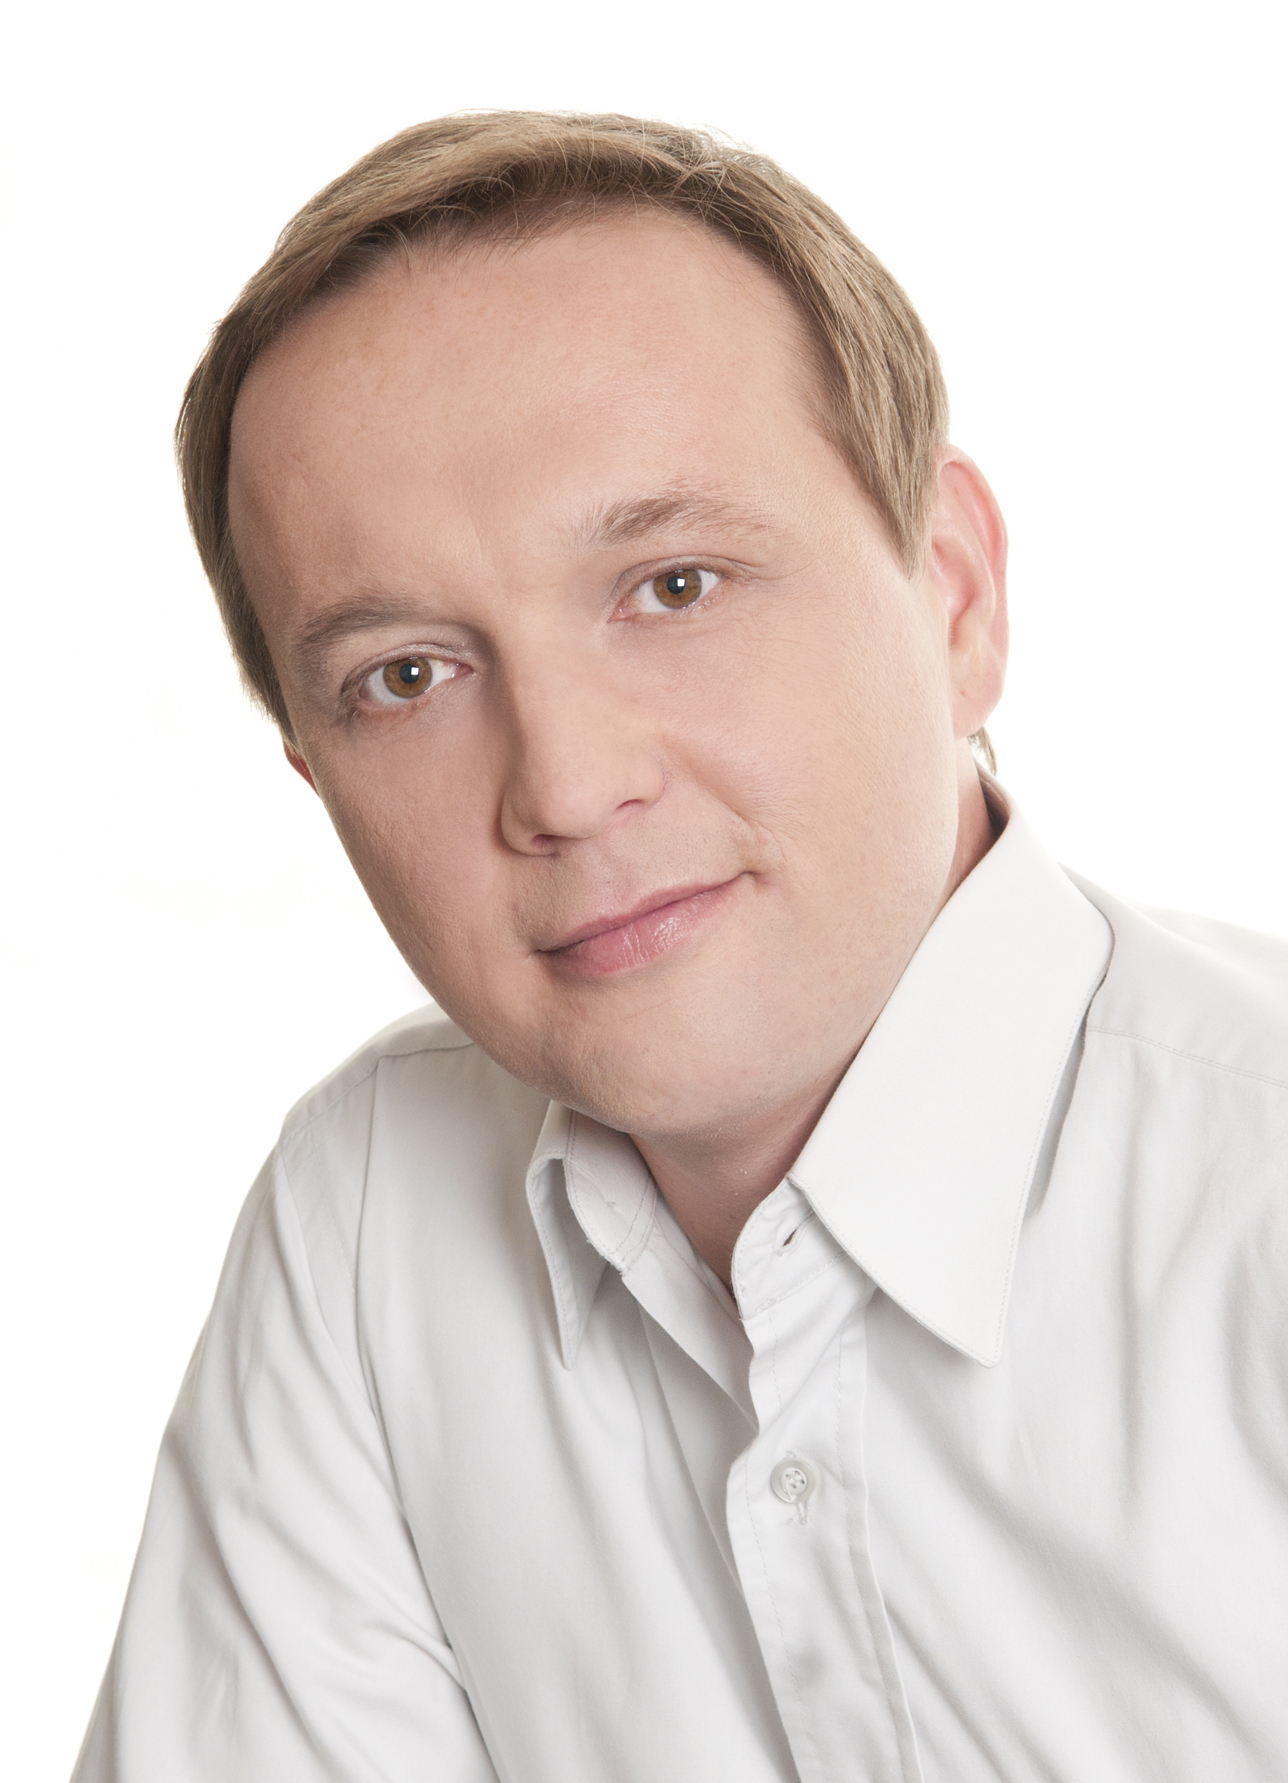 Dariusz, Physiotherapist and Wellness Practitioner